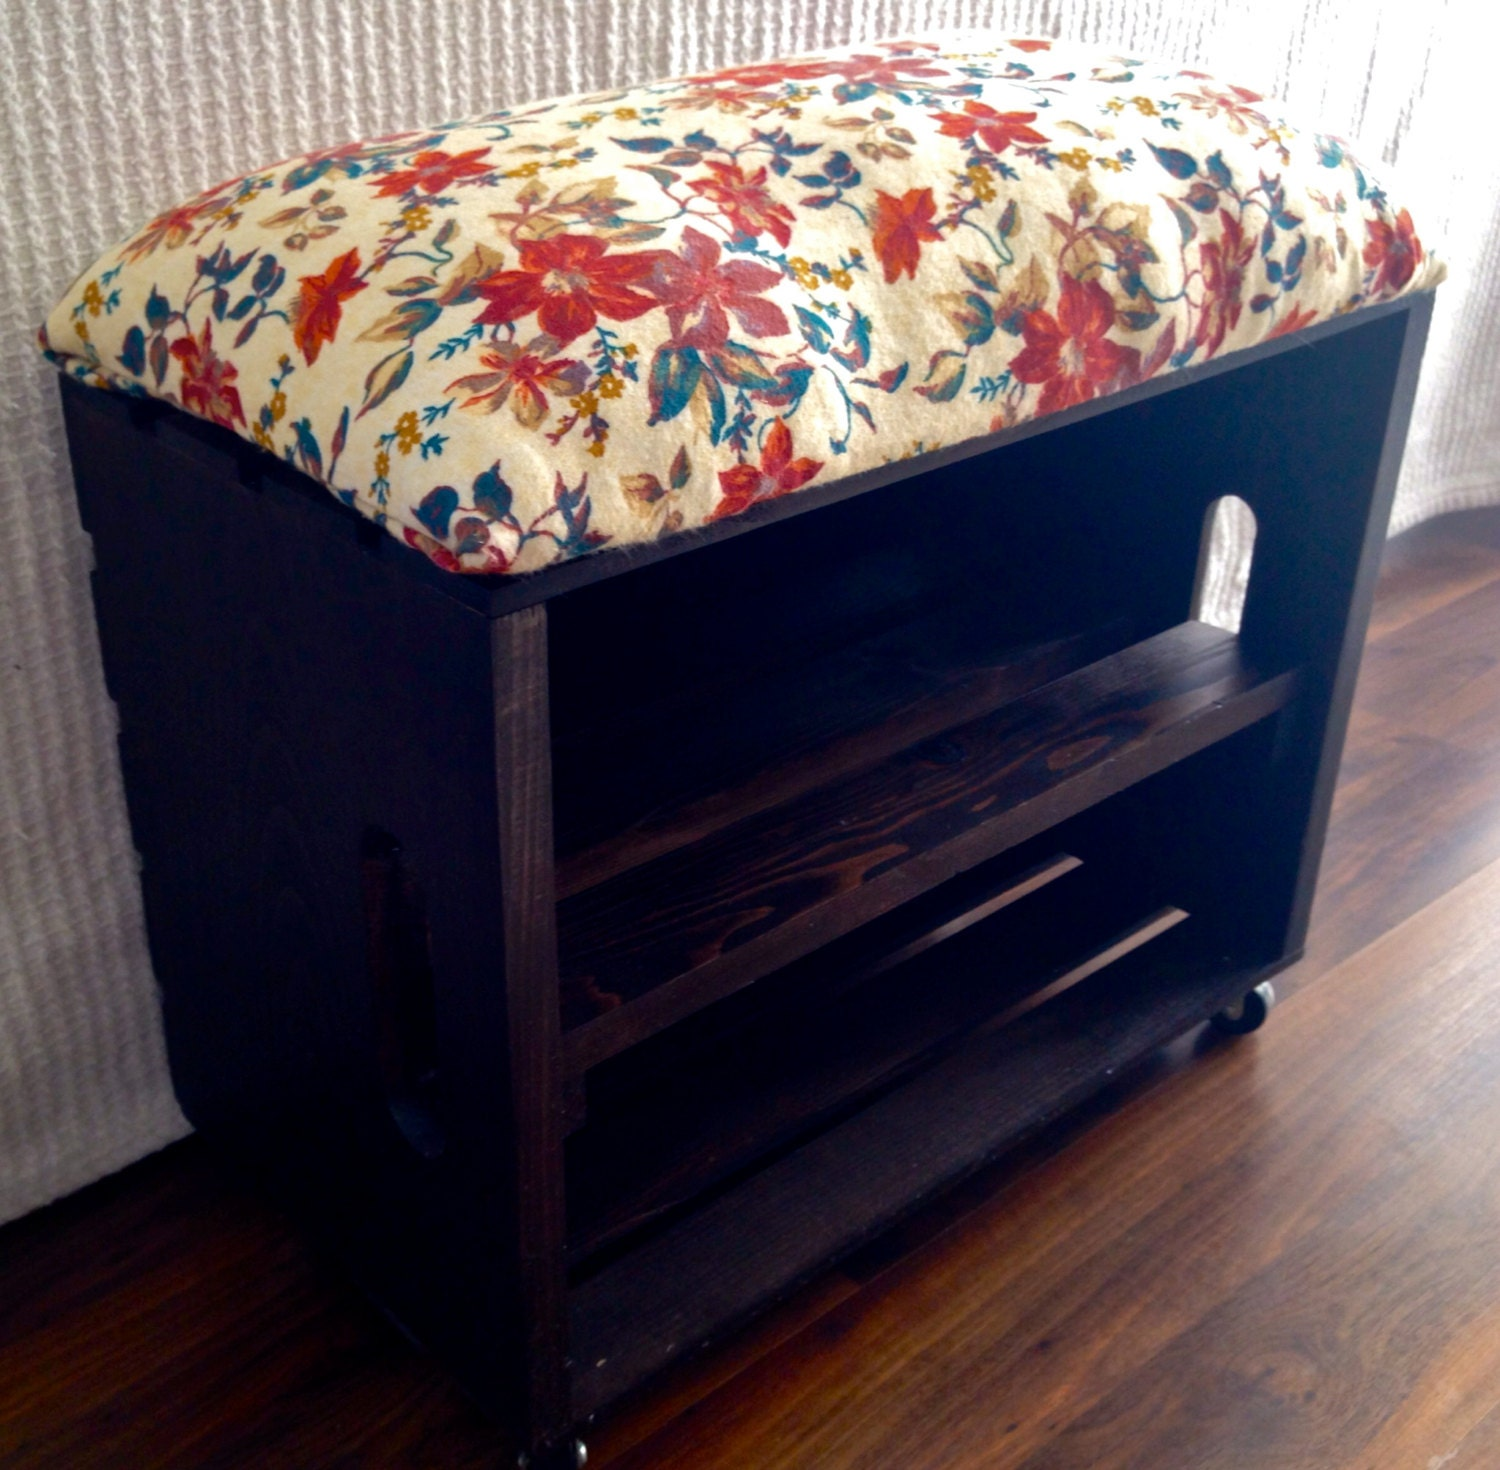 Items similar to infant wood crate shoe bench on etsy for Wood crate bench